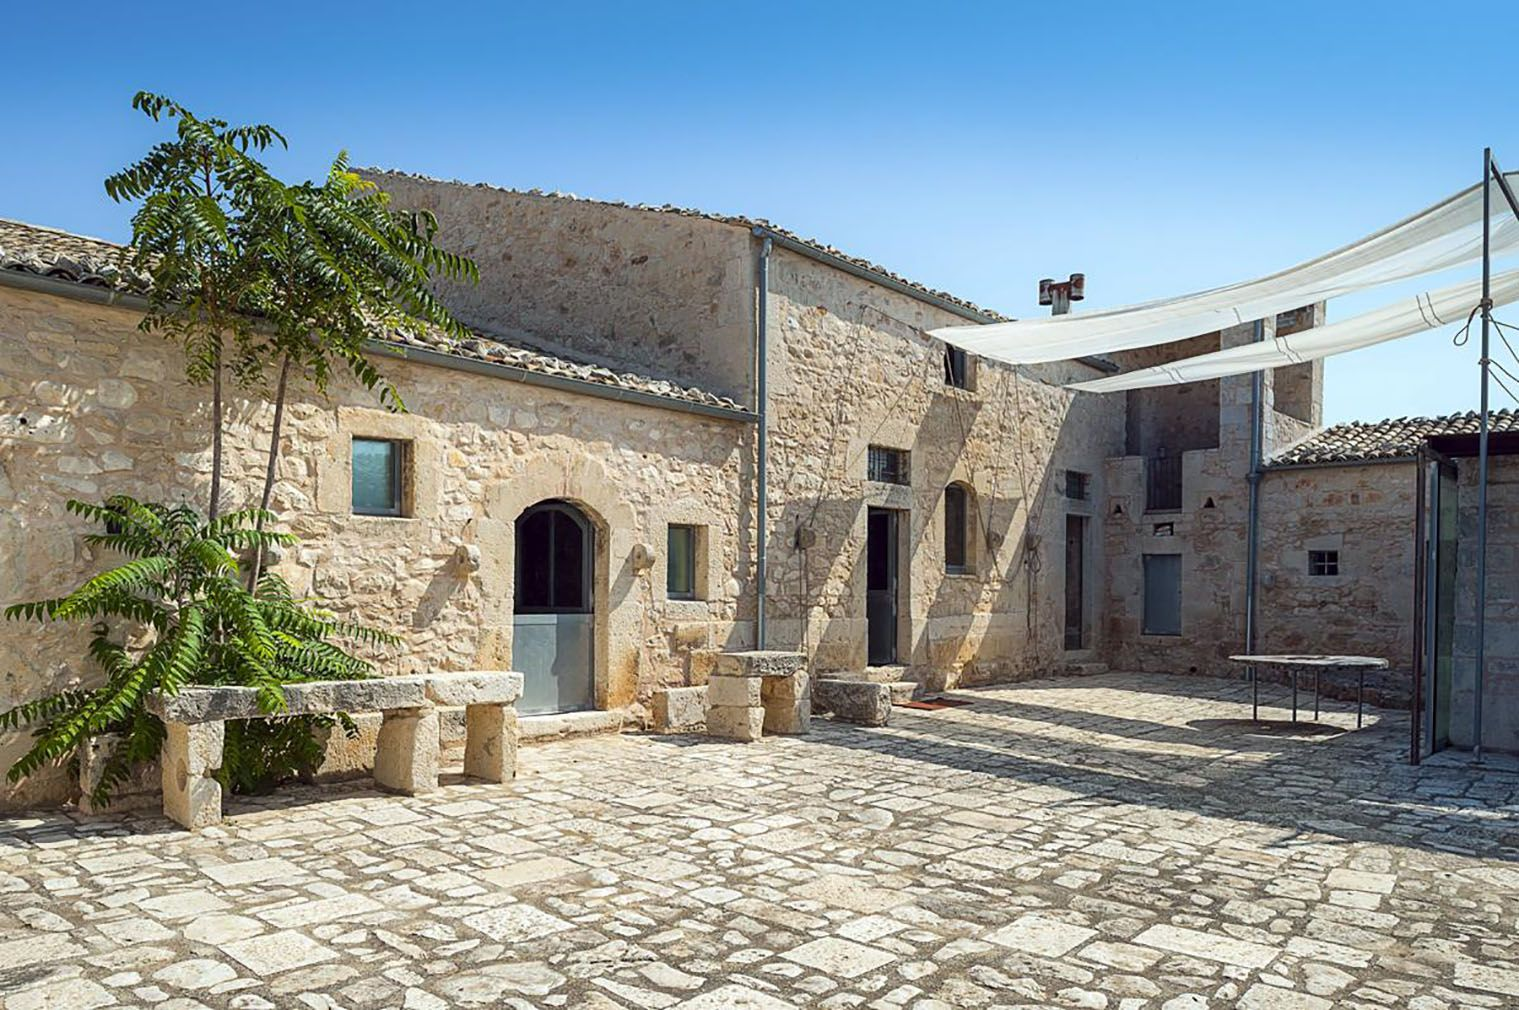 Holiday Home Of The Week A Restored Farmhouse On A Sicilian Unesco Site Restored Farmhouse Sicily Villas Sicily